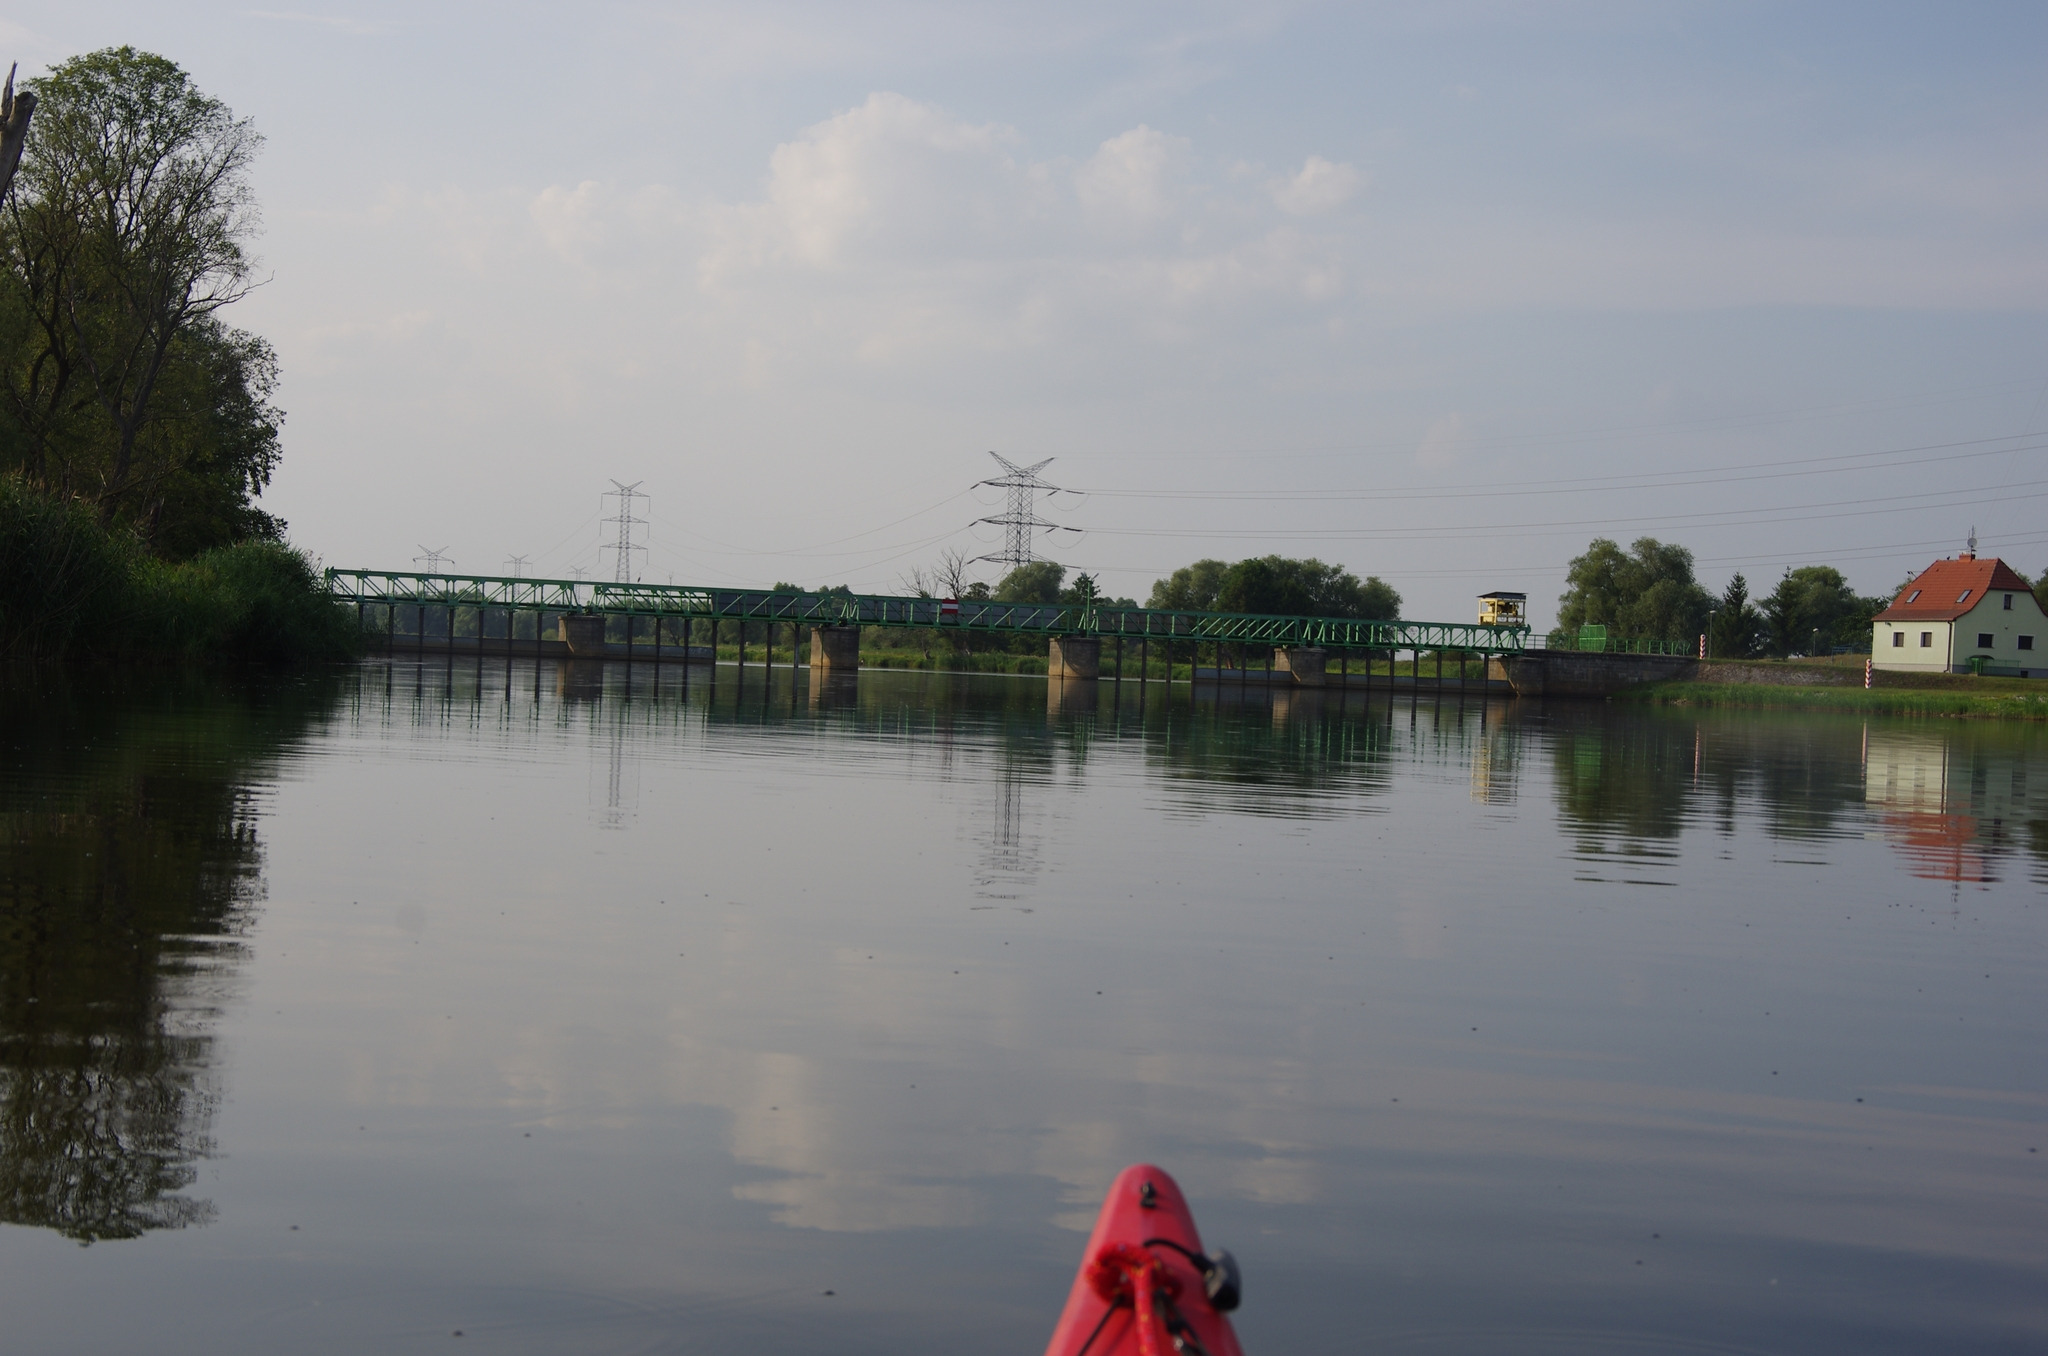 kayaking-odra-east-and-west_17-15-29_25-07-2016